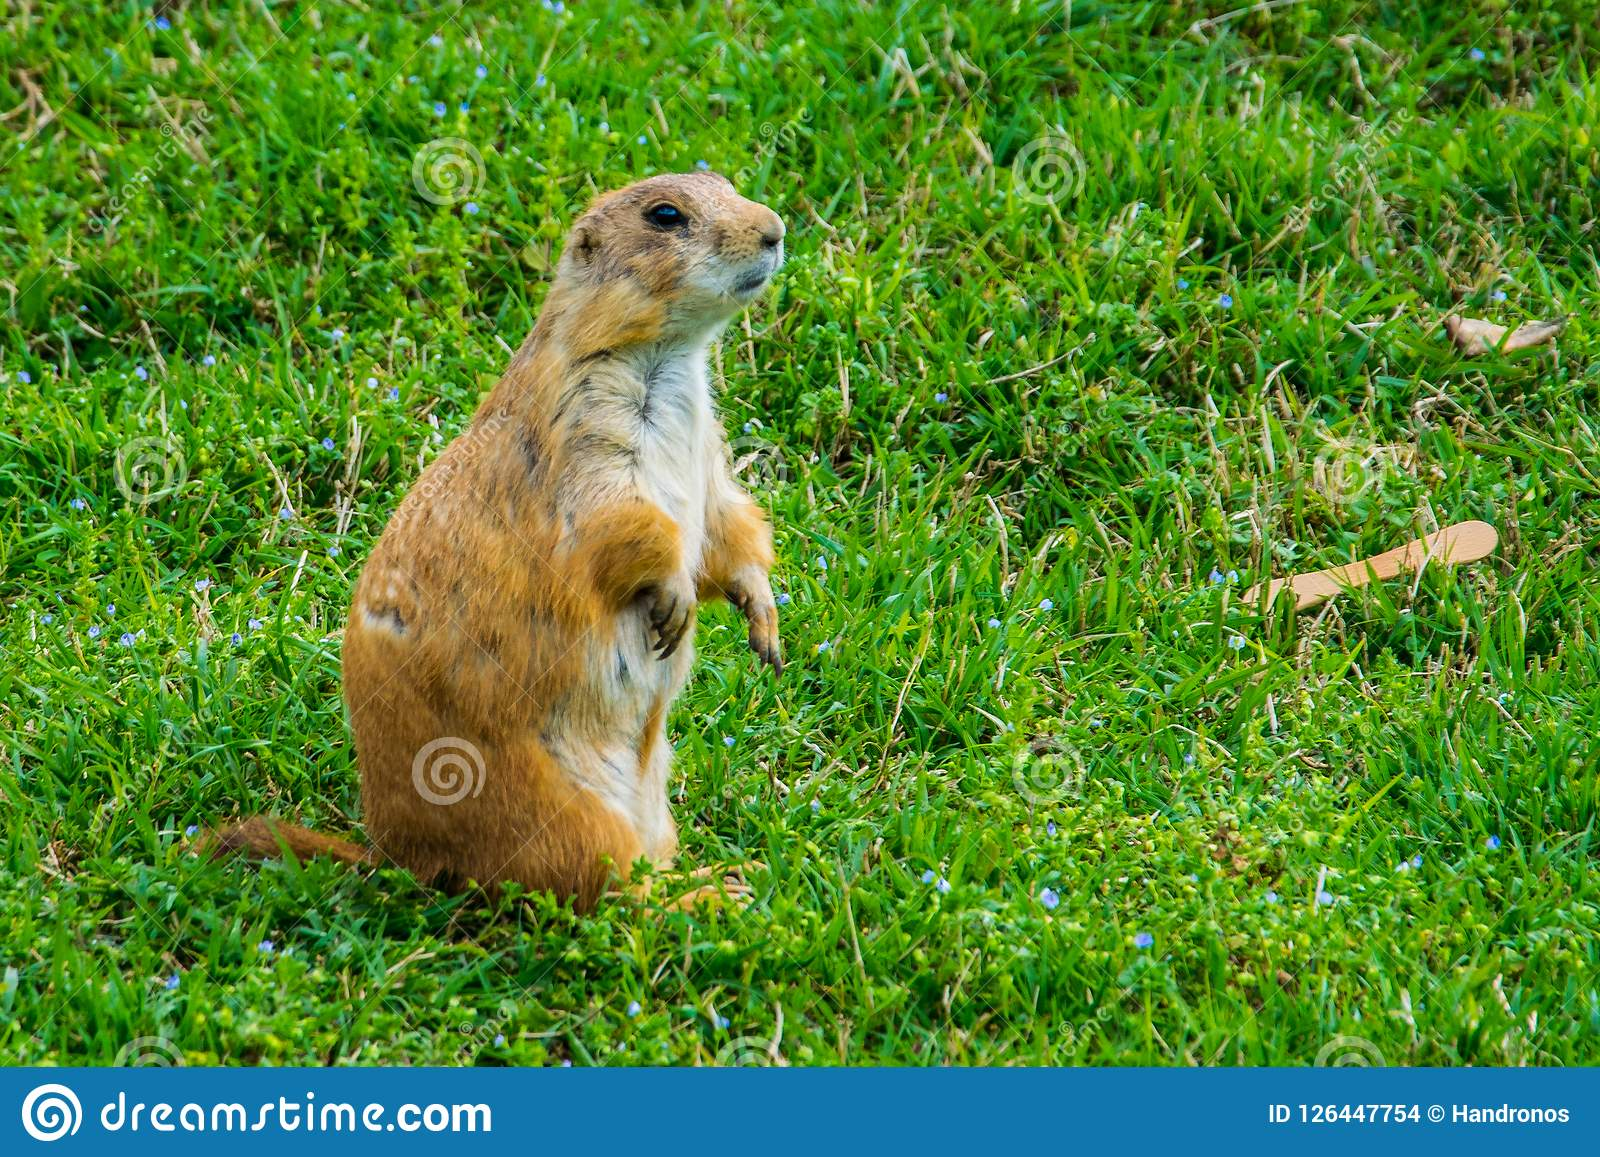 The black-tailed prairie dog is a rodent of the family Sciuridae found in the Great Plains of North America